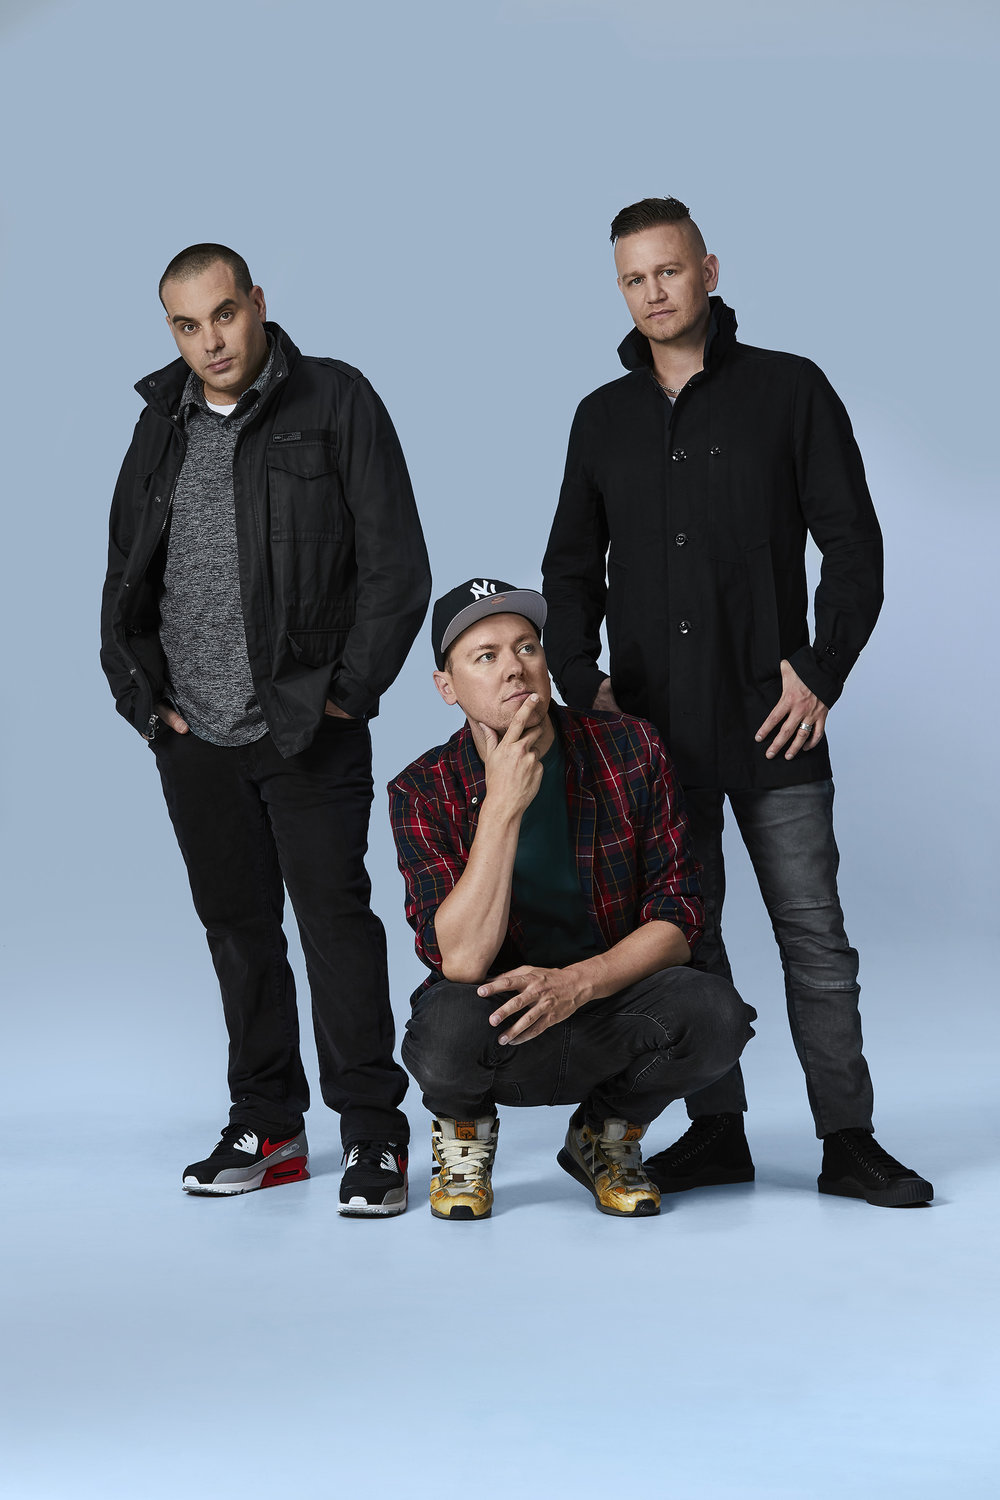 Hilltop+Hoods0432+Low+Res.jpg